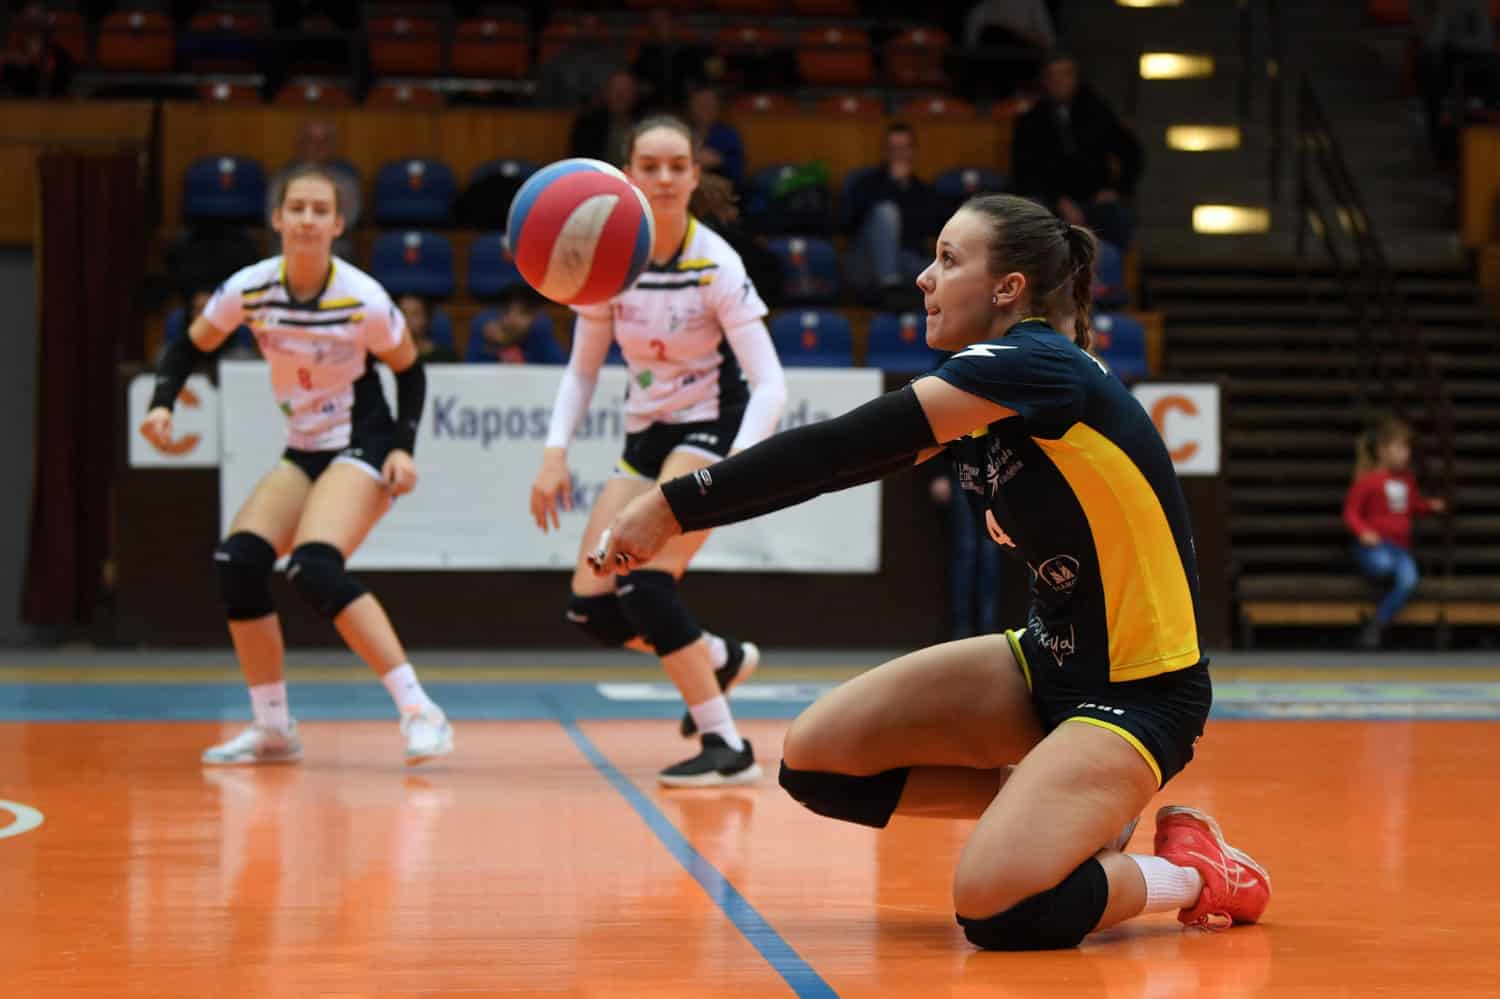 Volleyball player on her knees digging a ball